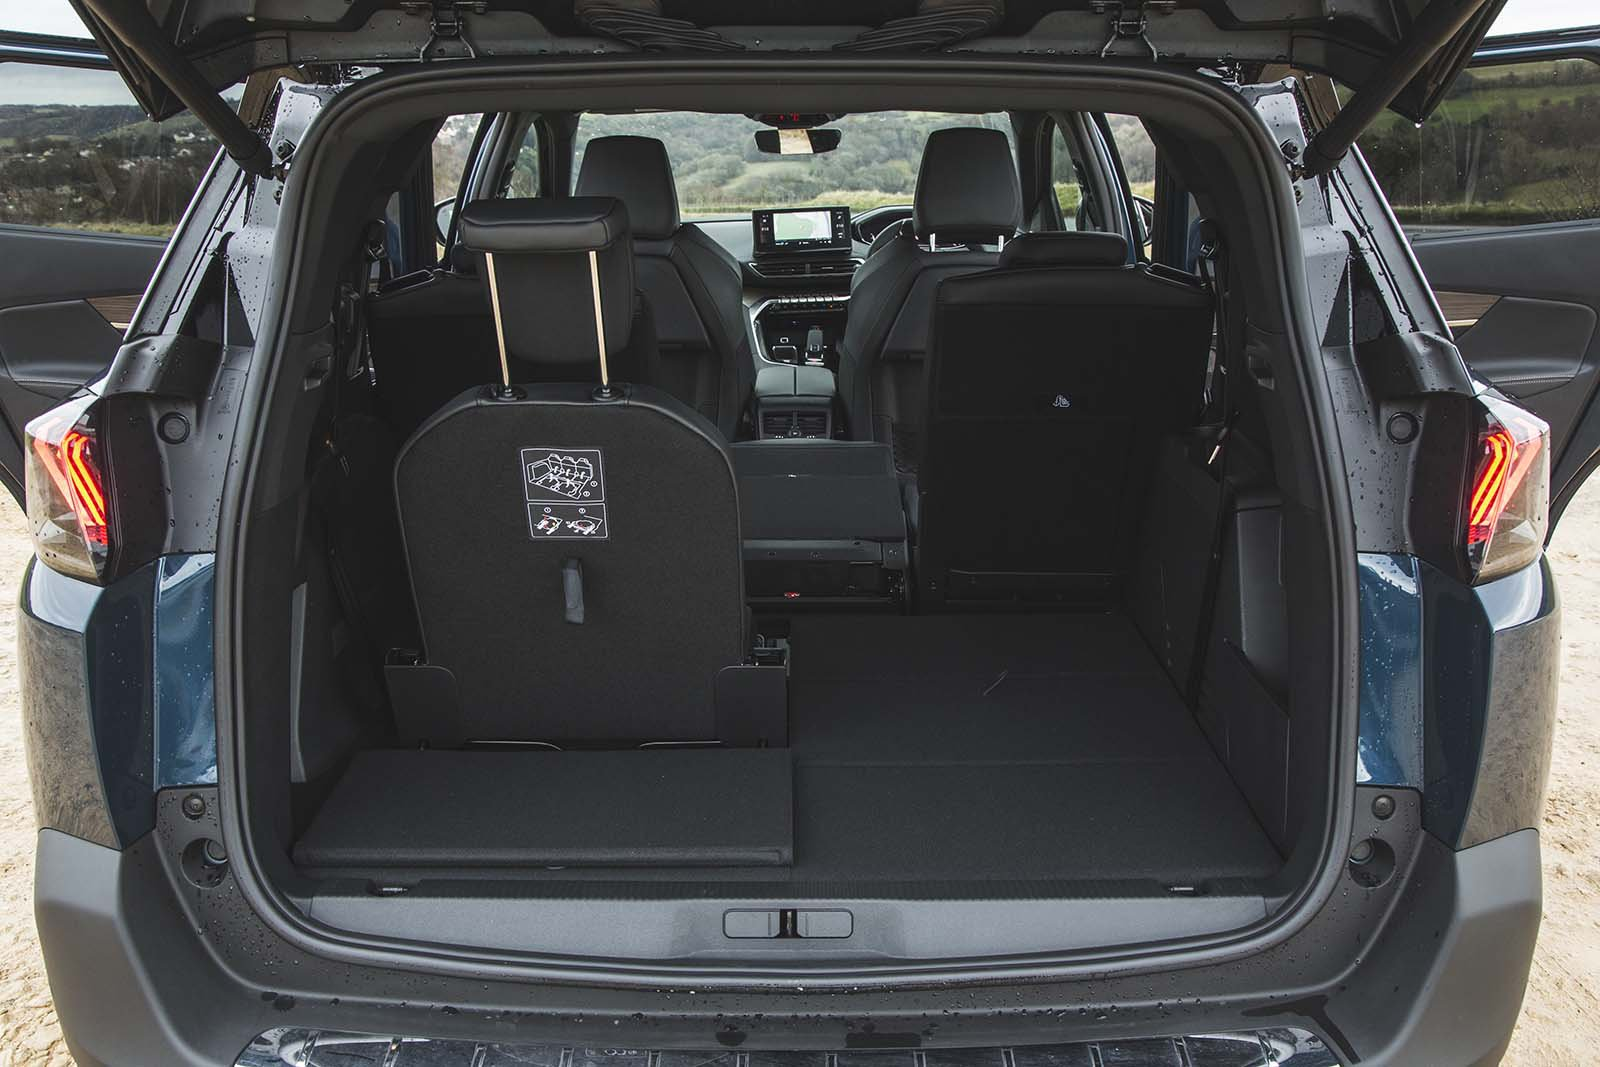 Peugeot 5008 2020 Third row fold-out seats